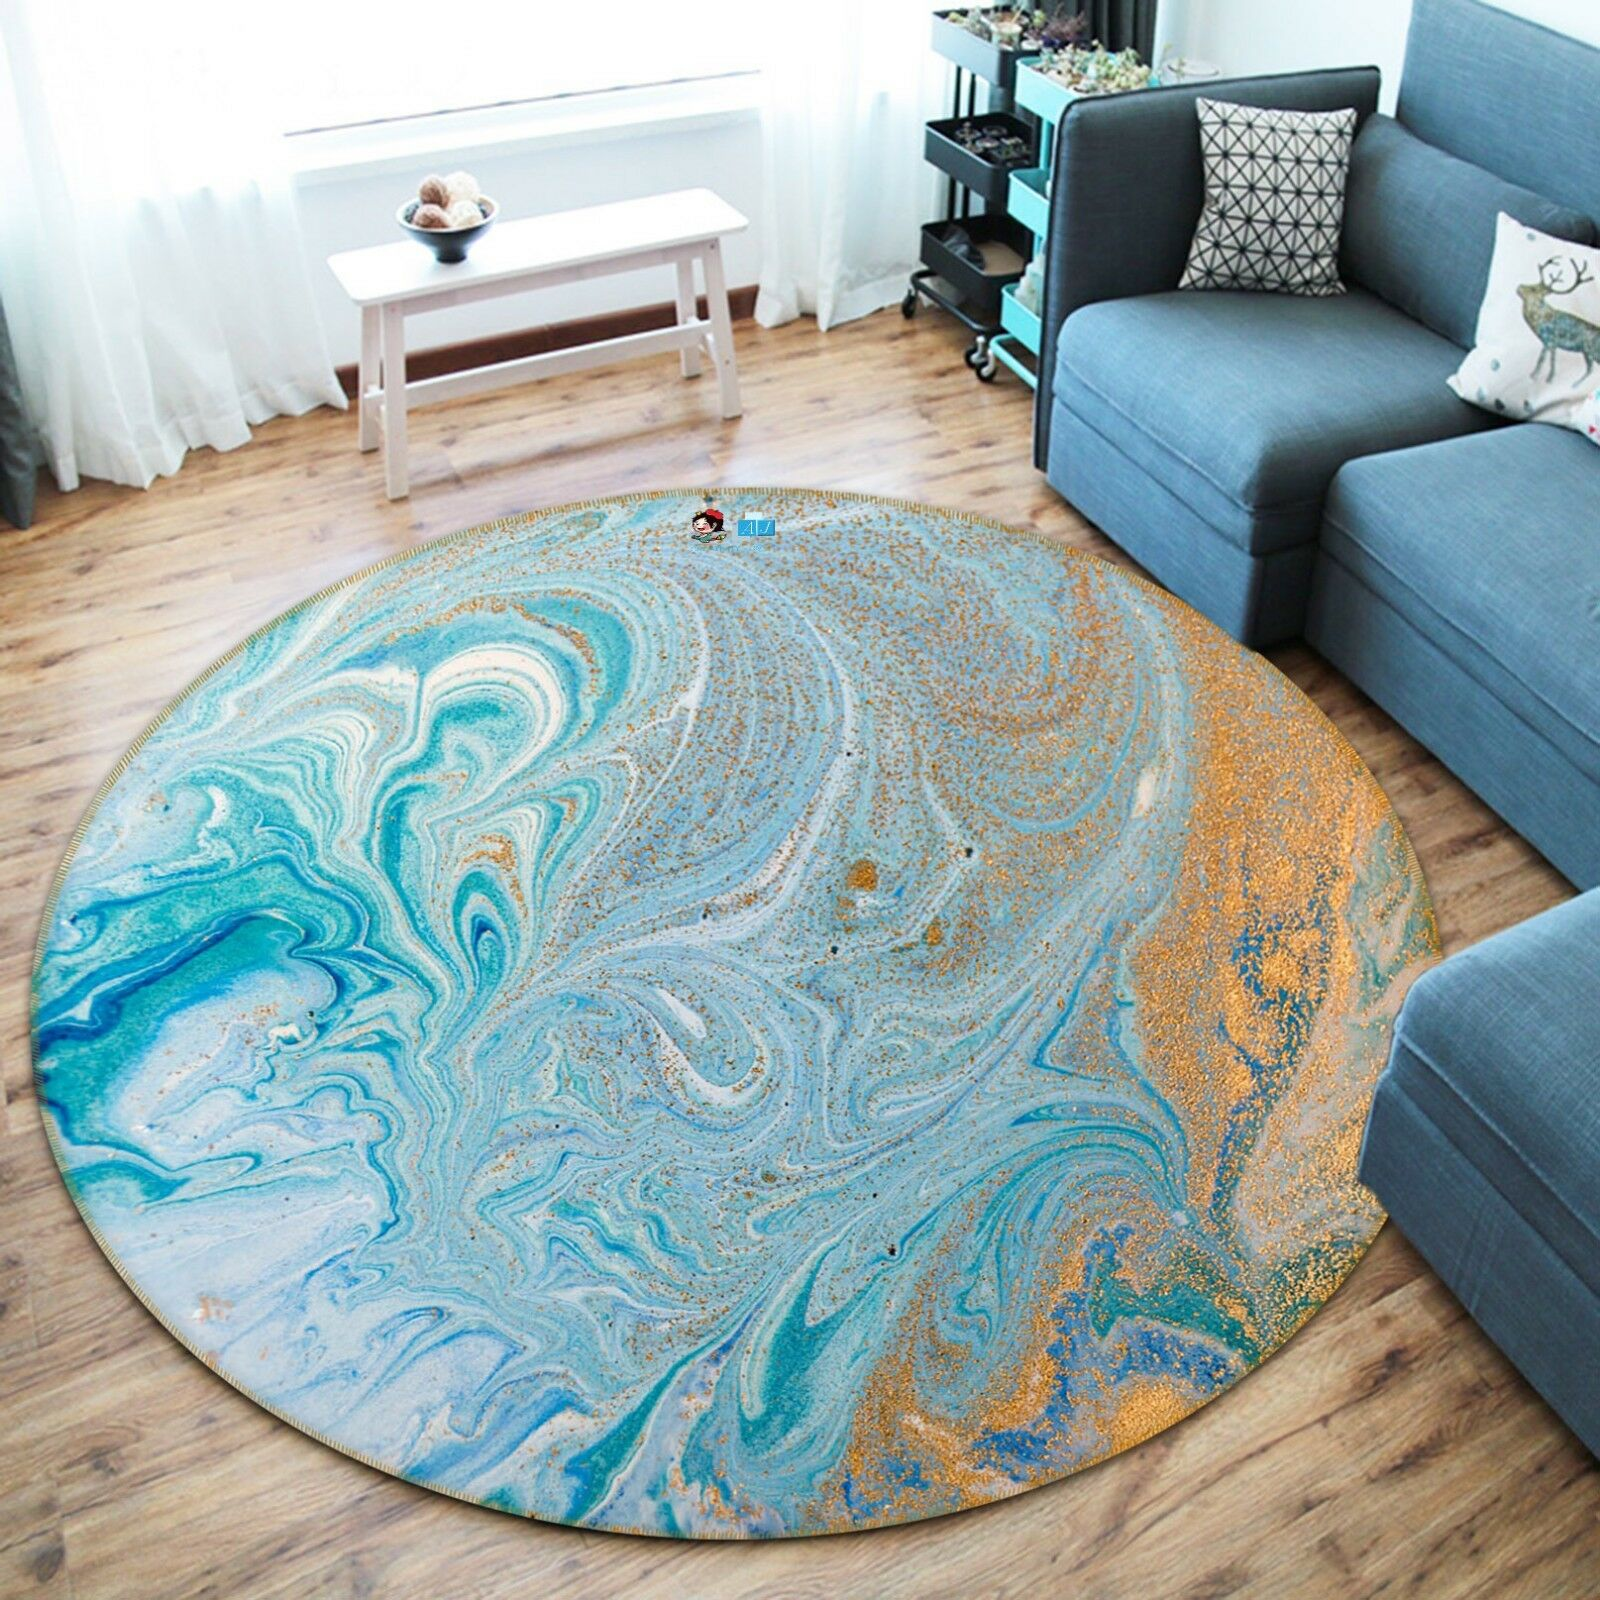 3D Texture Painting 54 Non Slip Rug Room Mat Round Quality Elegant Photo Carpet